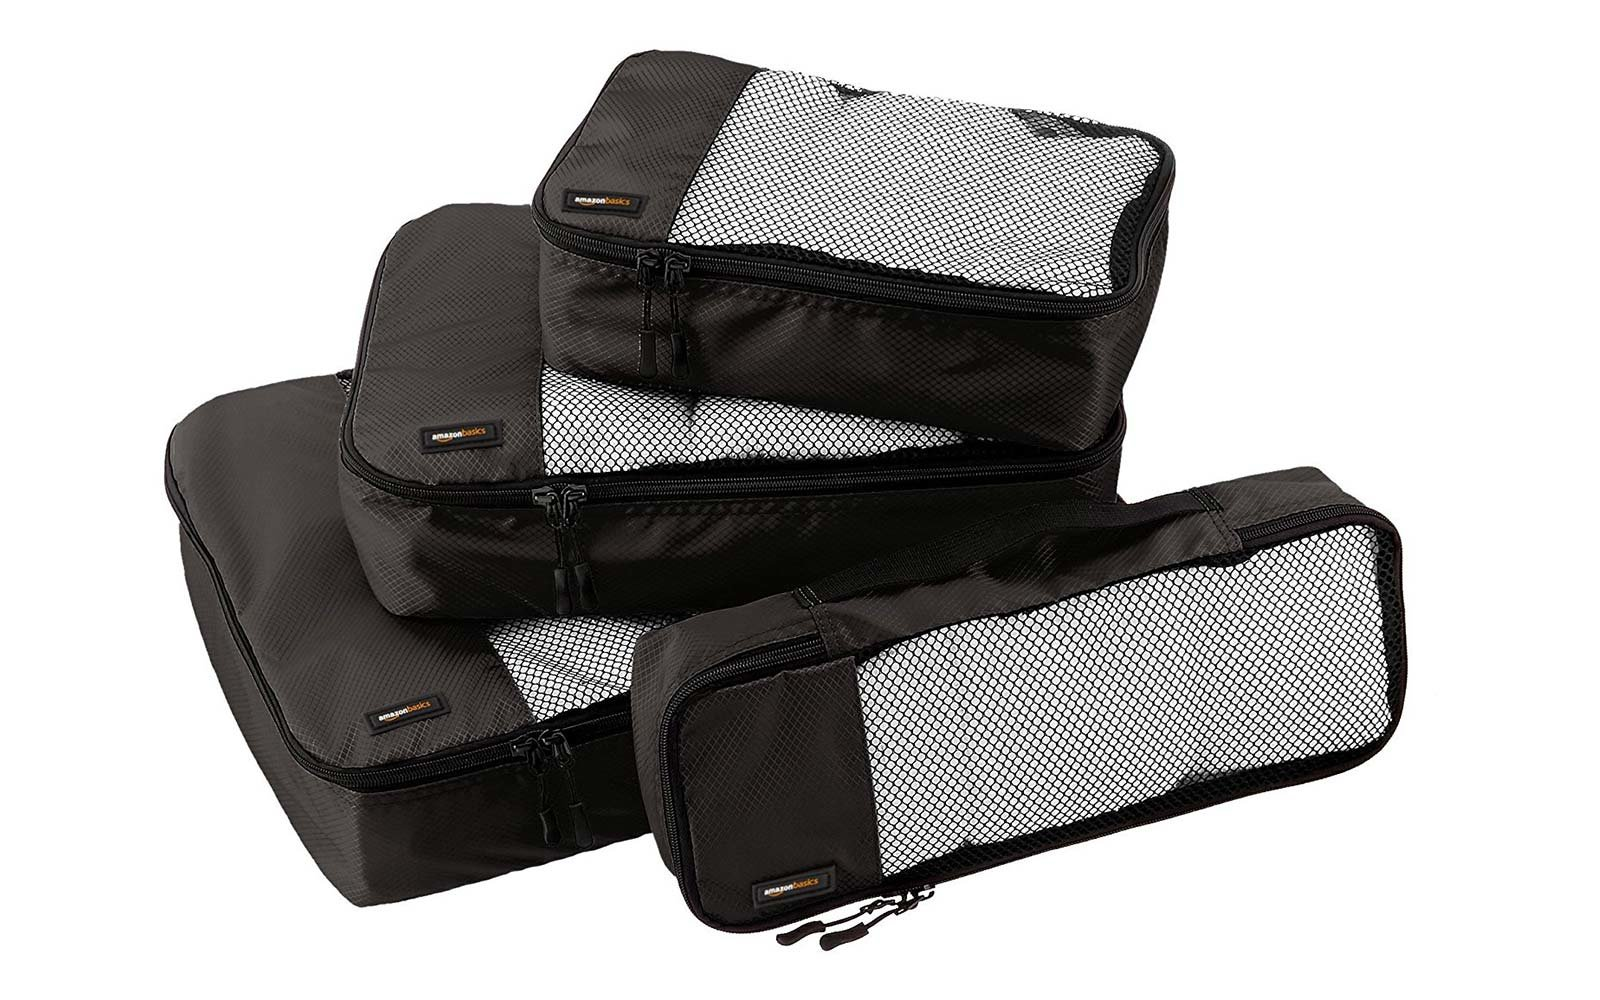 Packing Cells The 8 Best Packing Cubes For Travel Travel Leisure